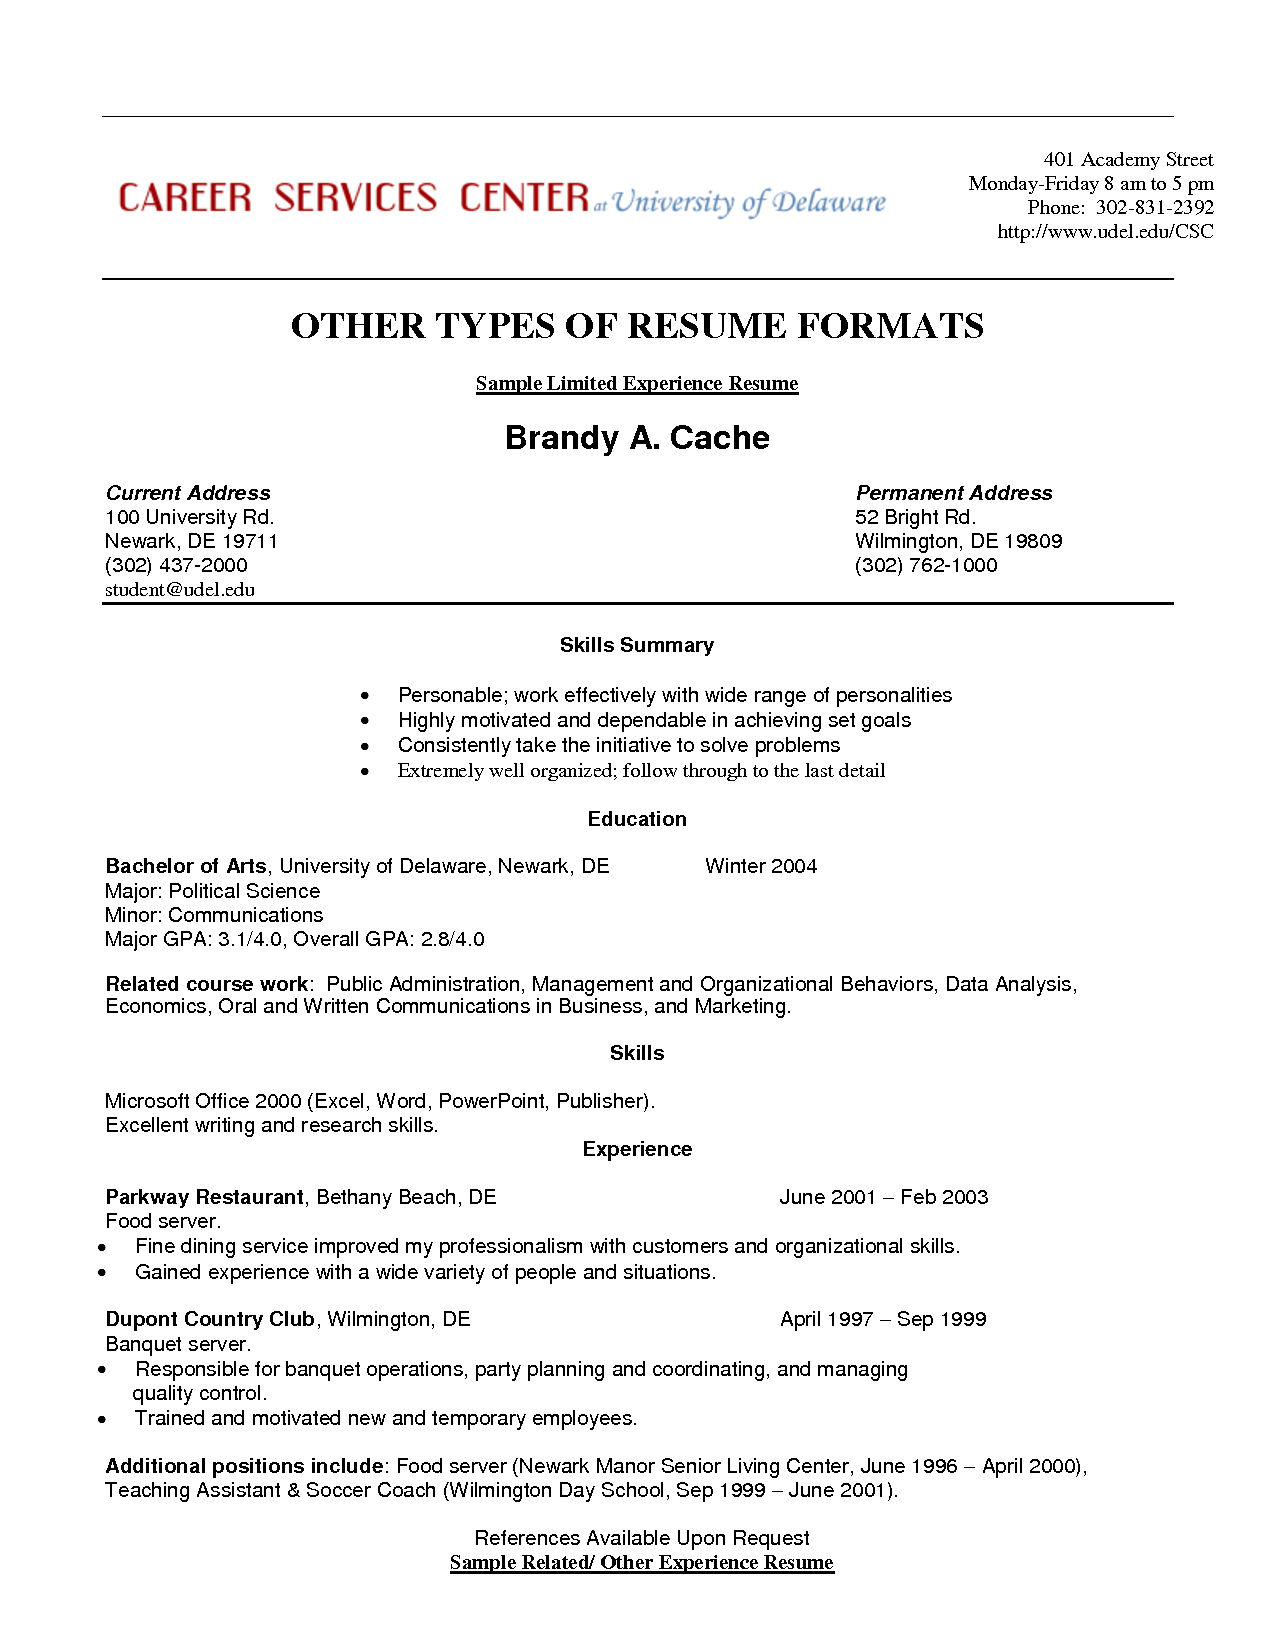 resume examples job experience template pinterest resume